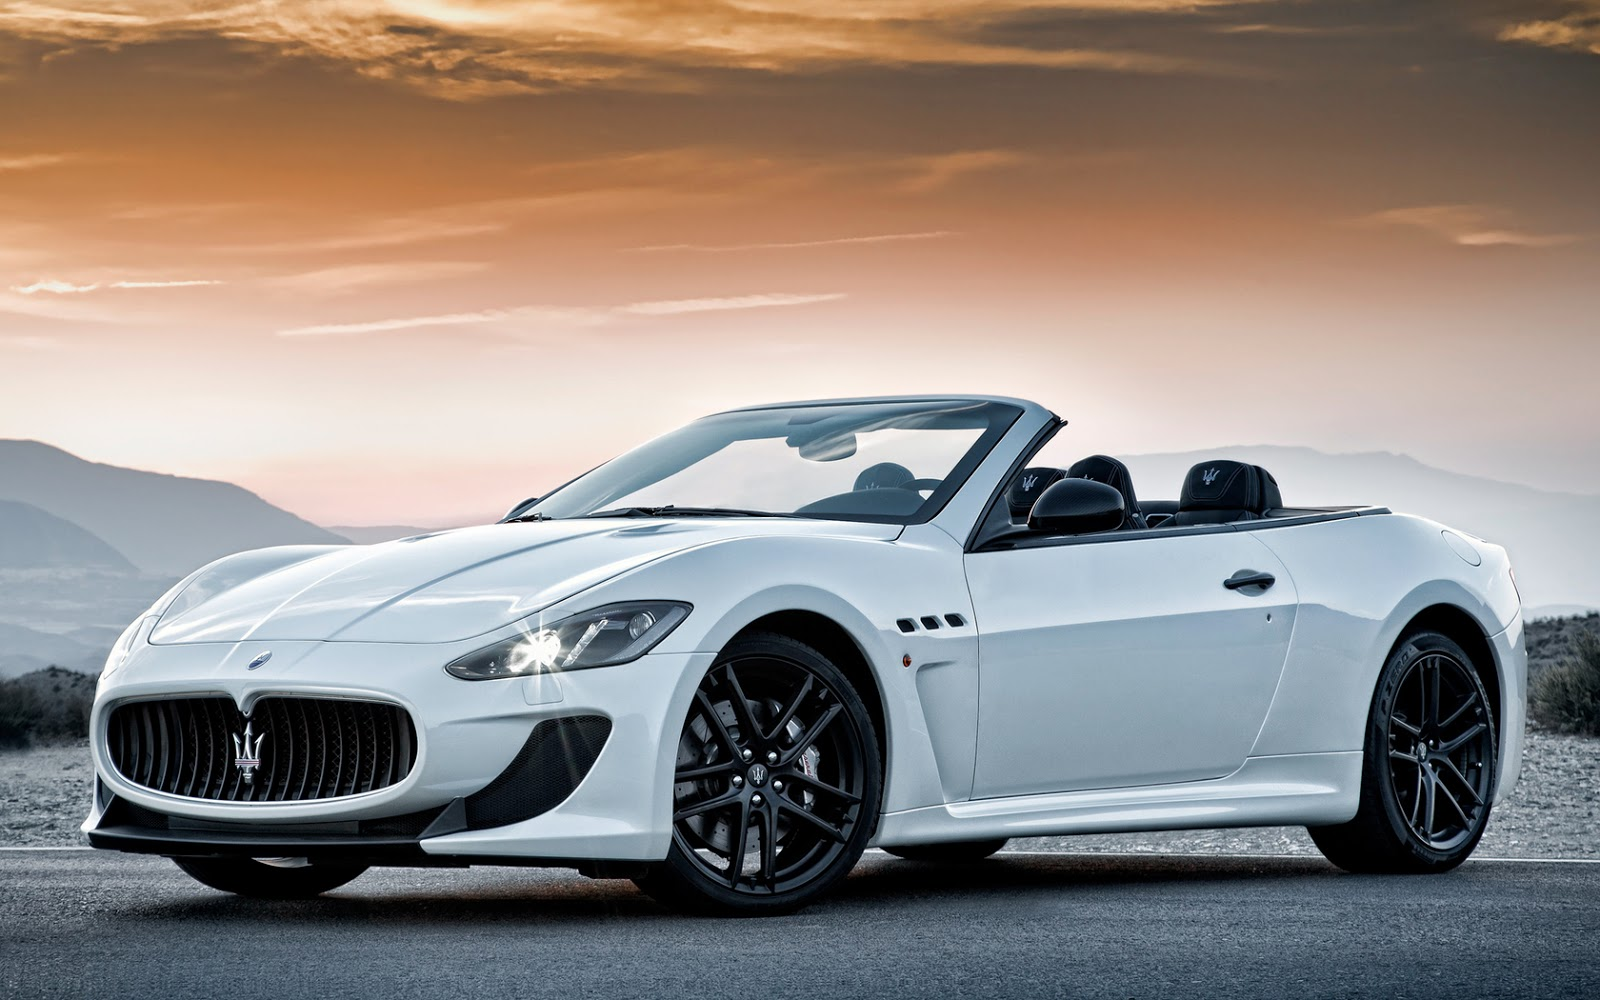 Cars-HD-Wallpapers: Maserati GranTurismo Best HD Picture